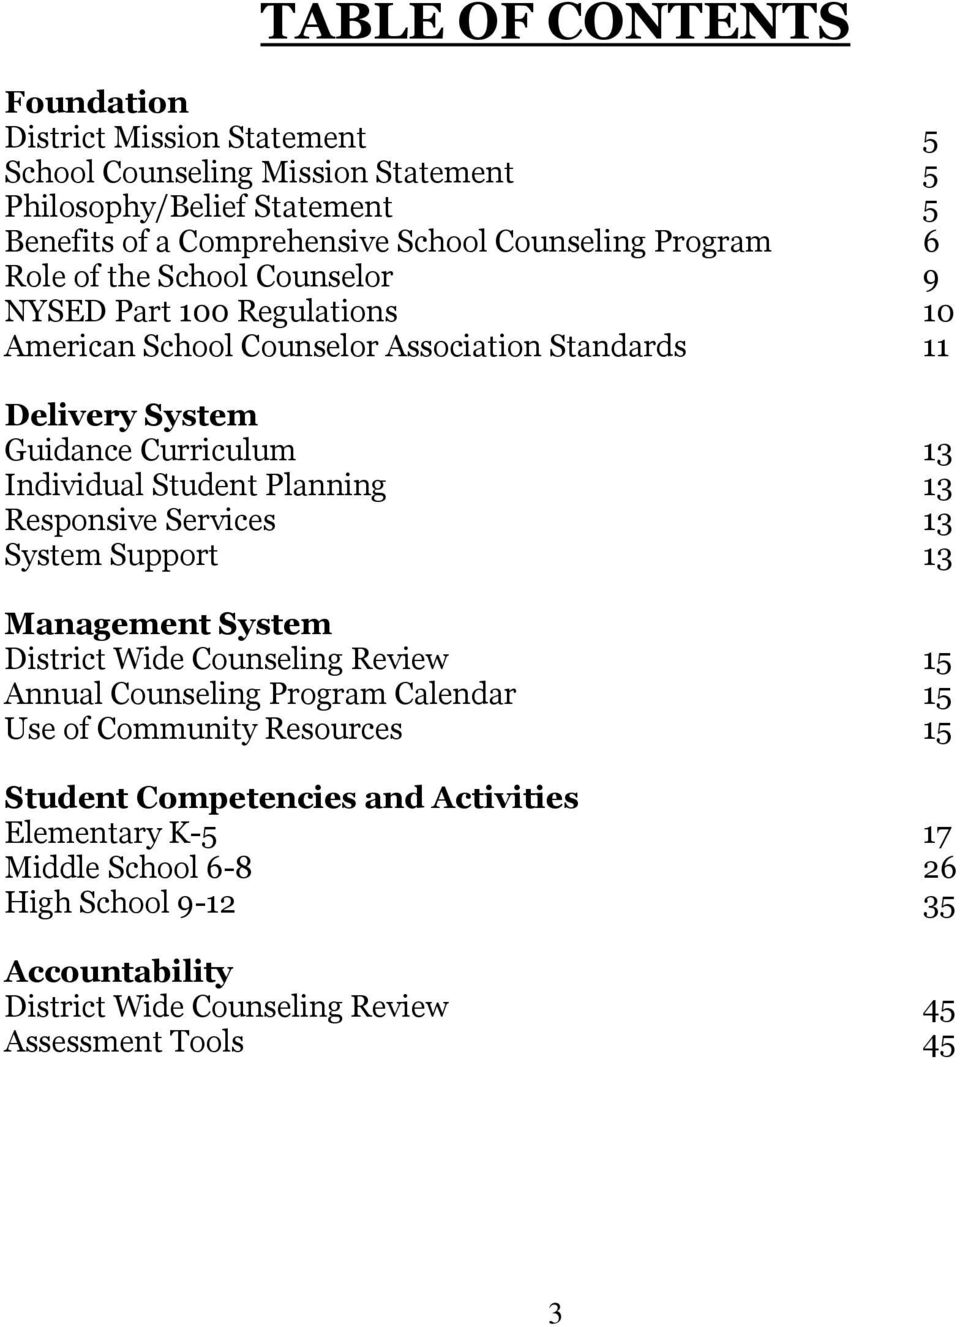 Individual Student Planning 13 Responsive Services 13 System Support 13 Management System District Wide Counseling Review 15 Annual Counseling Program Calendar 15 Use of